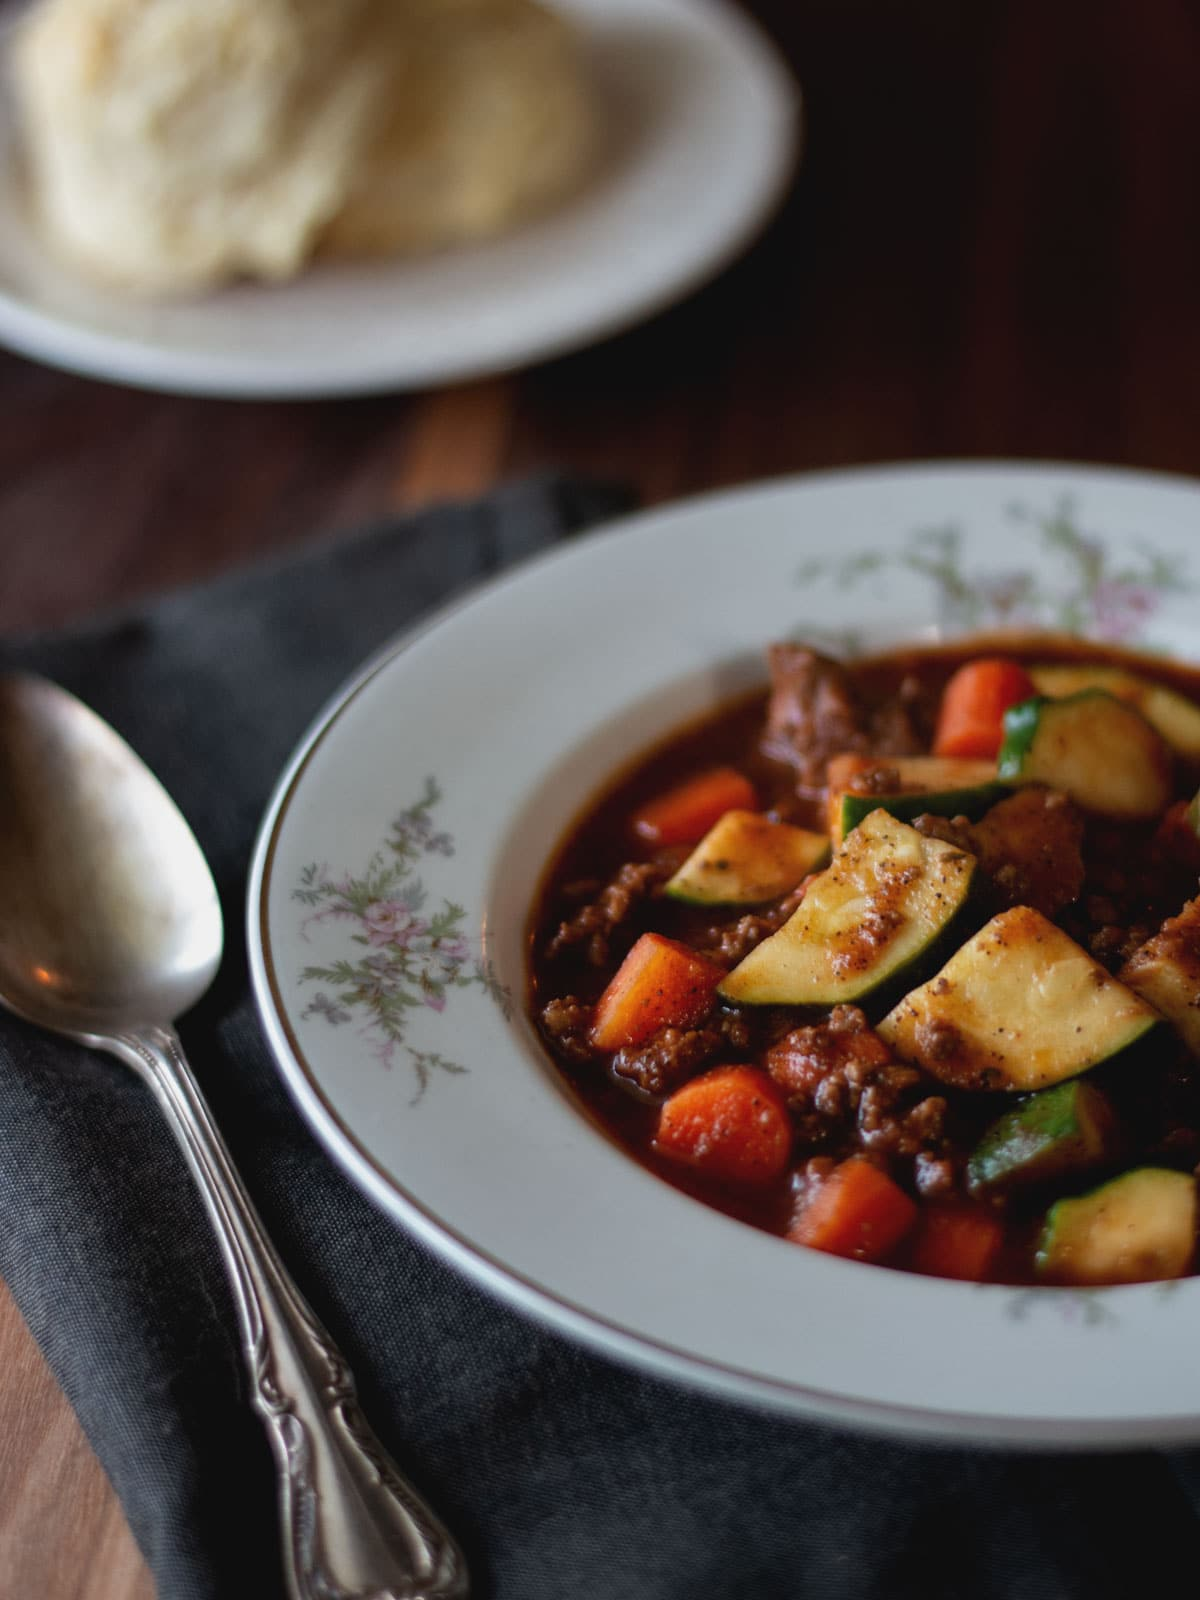 This Zucchini and Beef Soup is a hearty vegetable soup with tons of flavor.